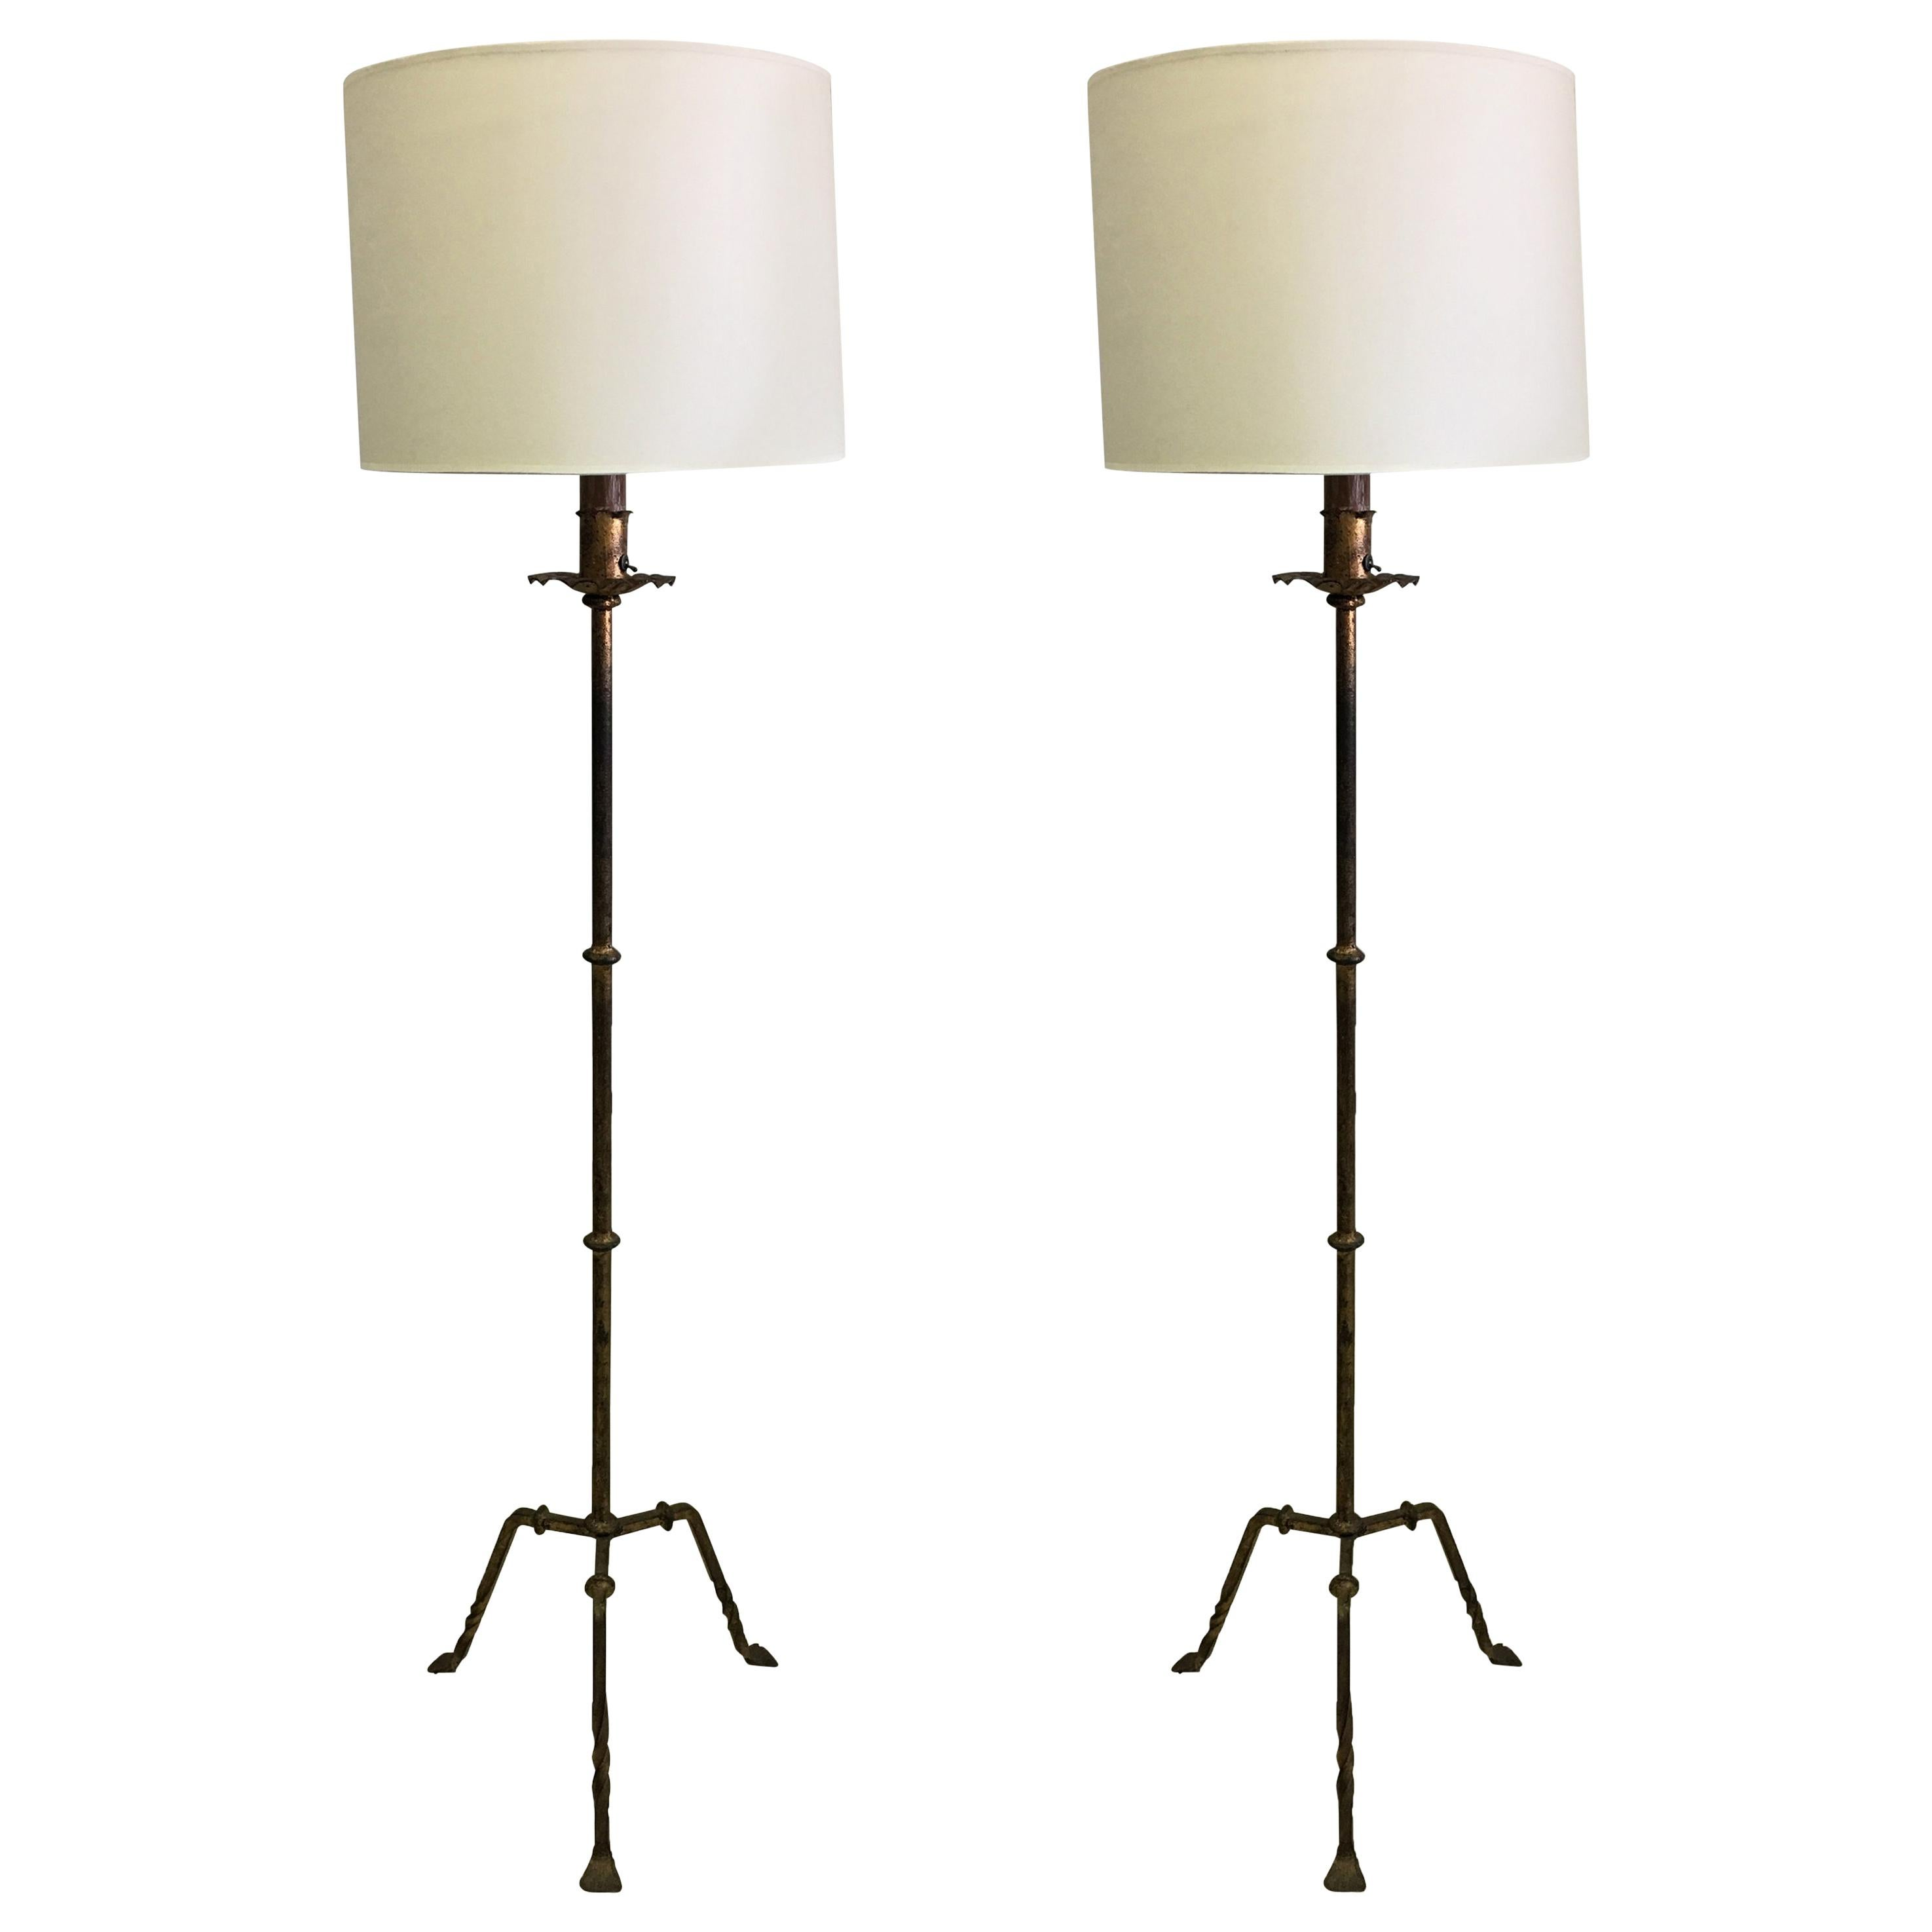 Pair of French Midcentury Gilt Wrought Iron Floor Lamps, circa 1940